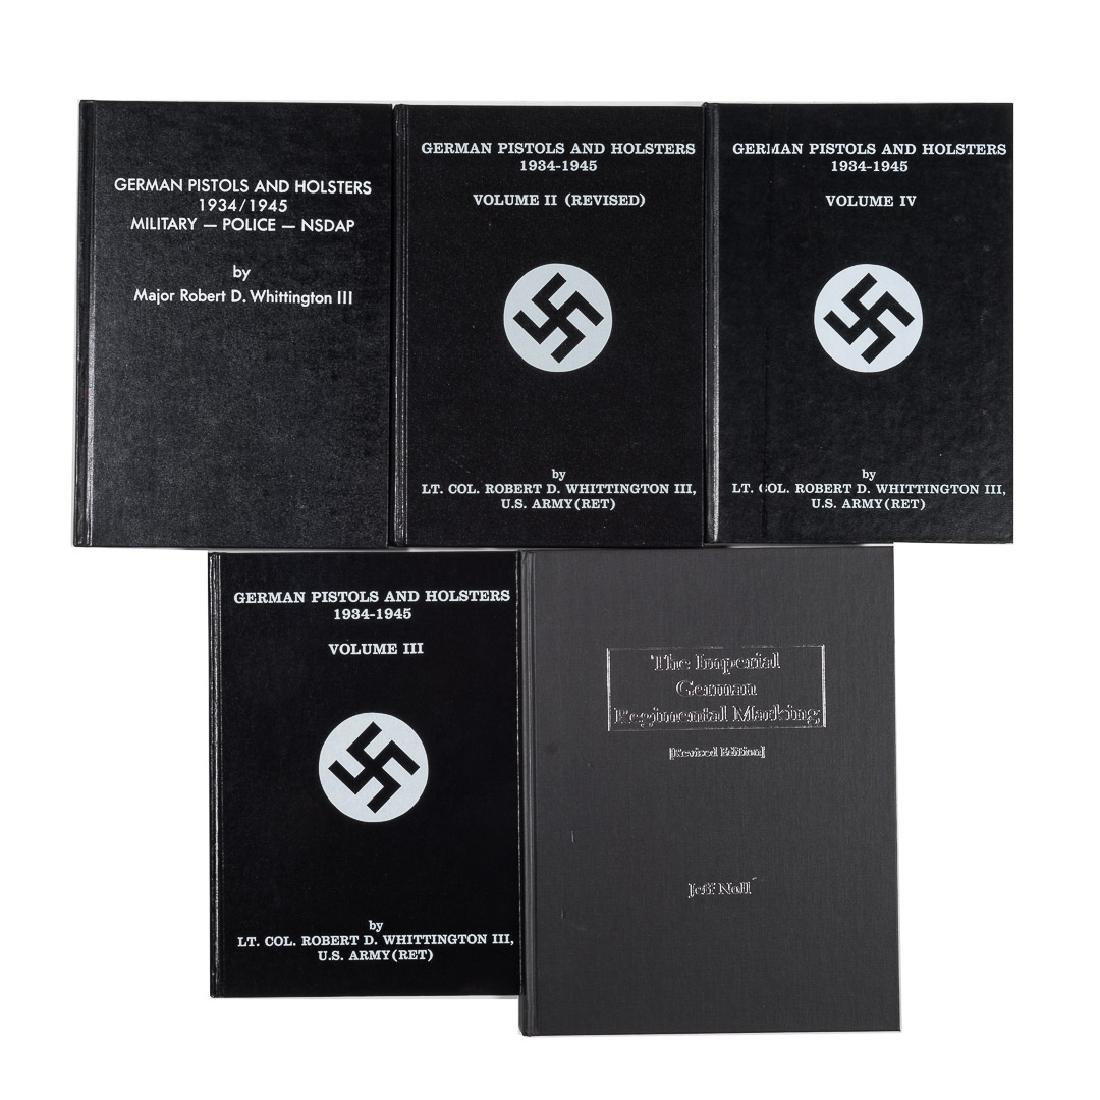 5 hardback books on German militaria - 2